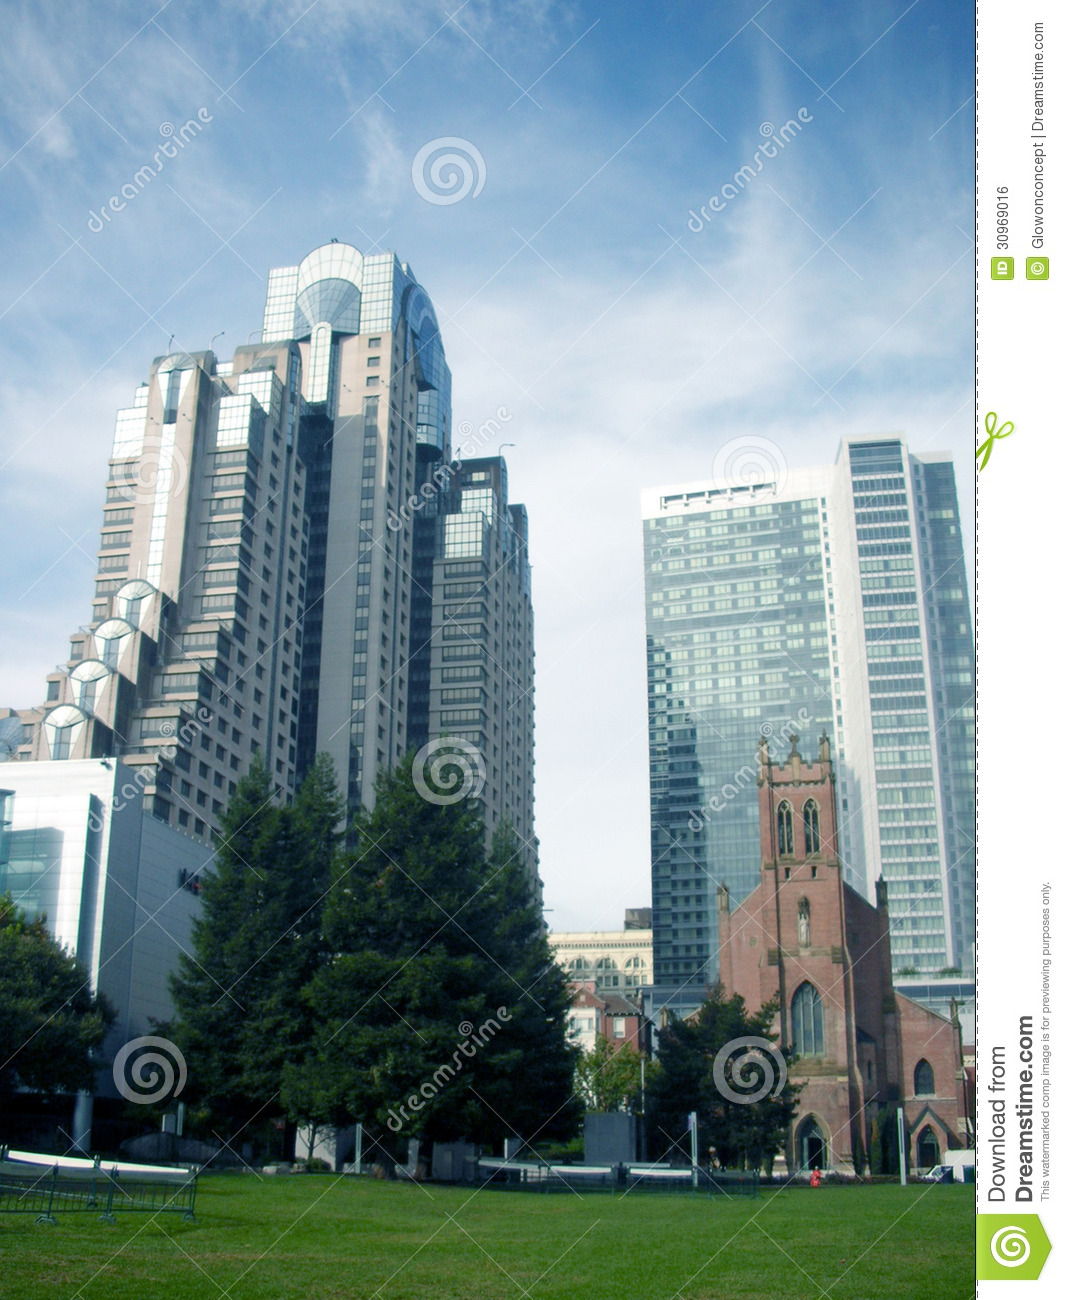 City Modern Building And Brick Church Royalty Free Stock